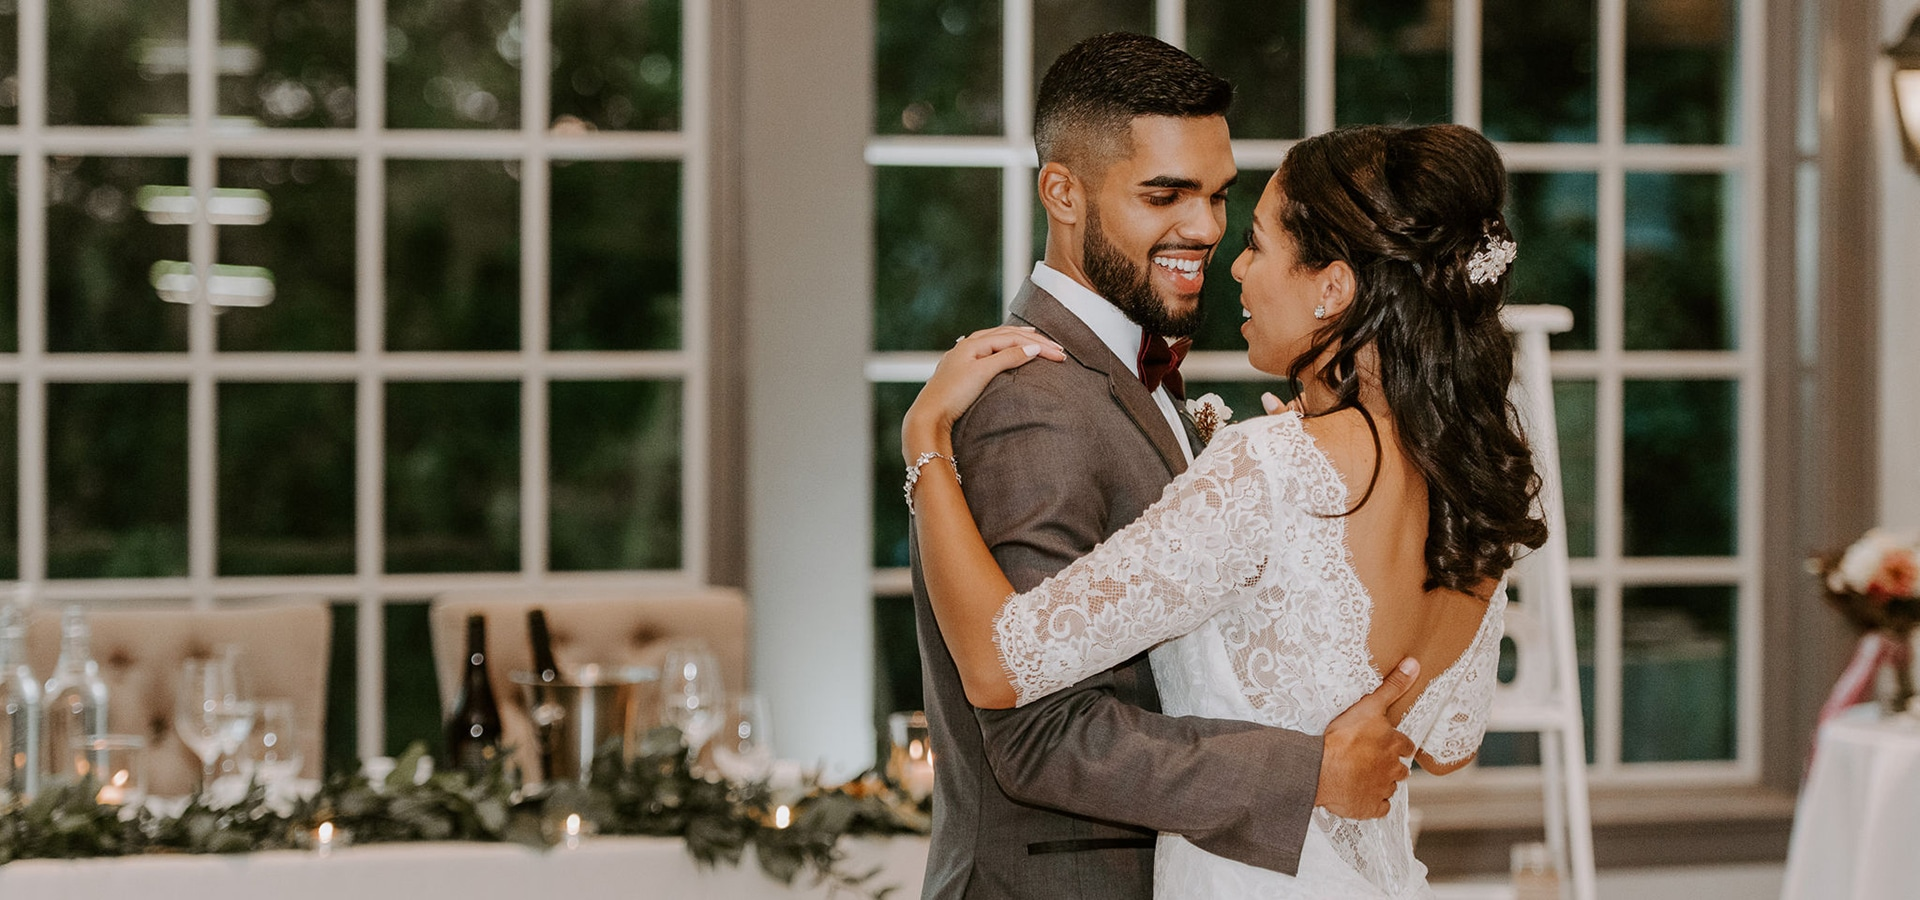 Hero image for Emily and Tyson's Romantic Wedding at The Doctor's House